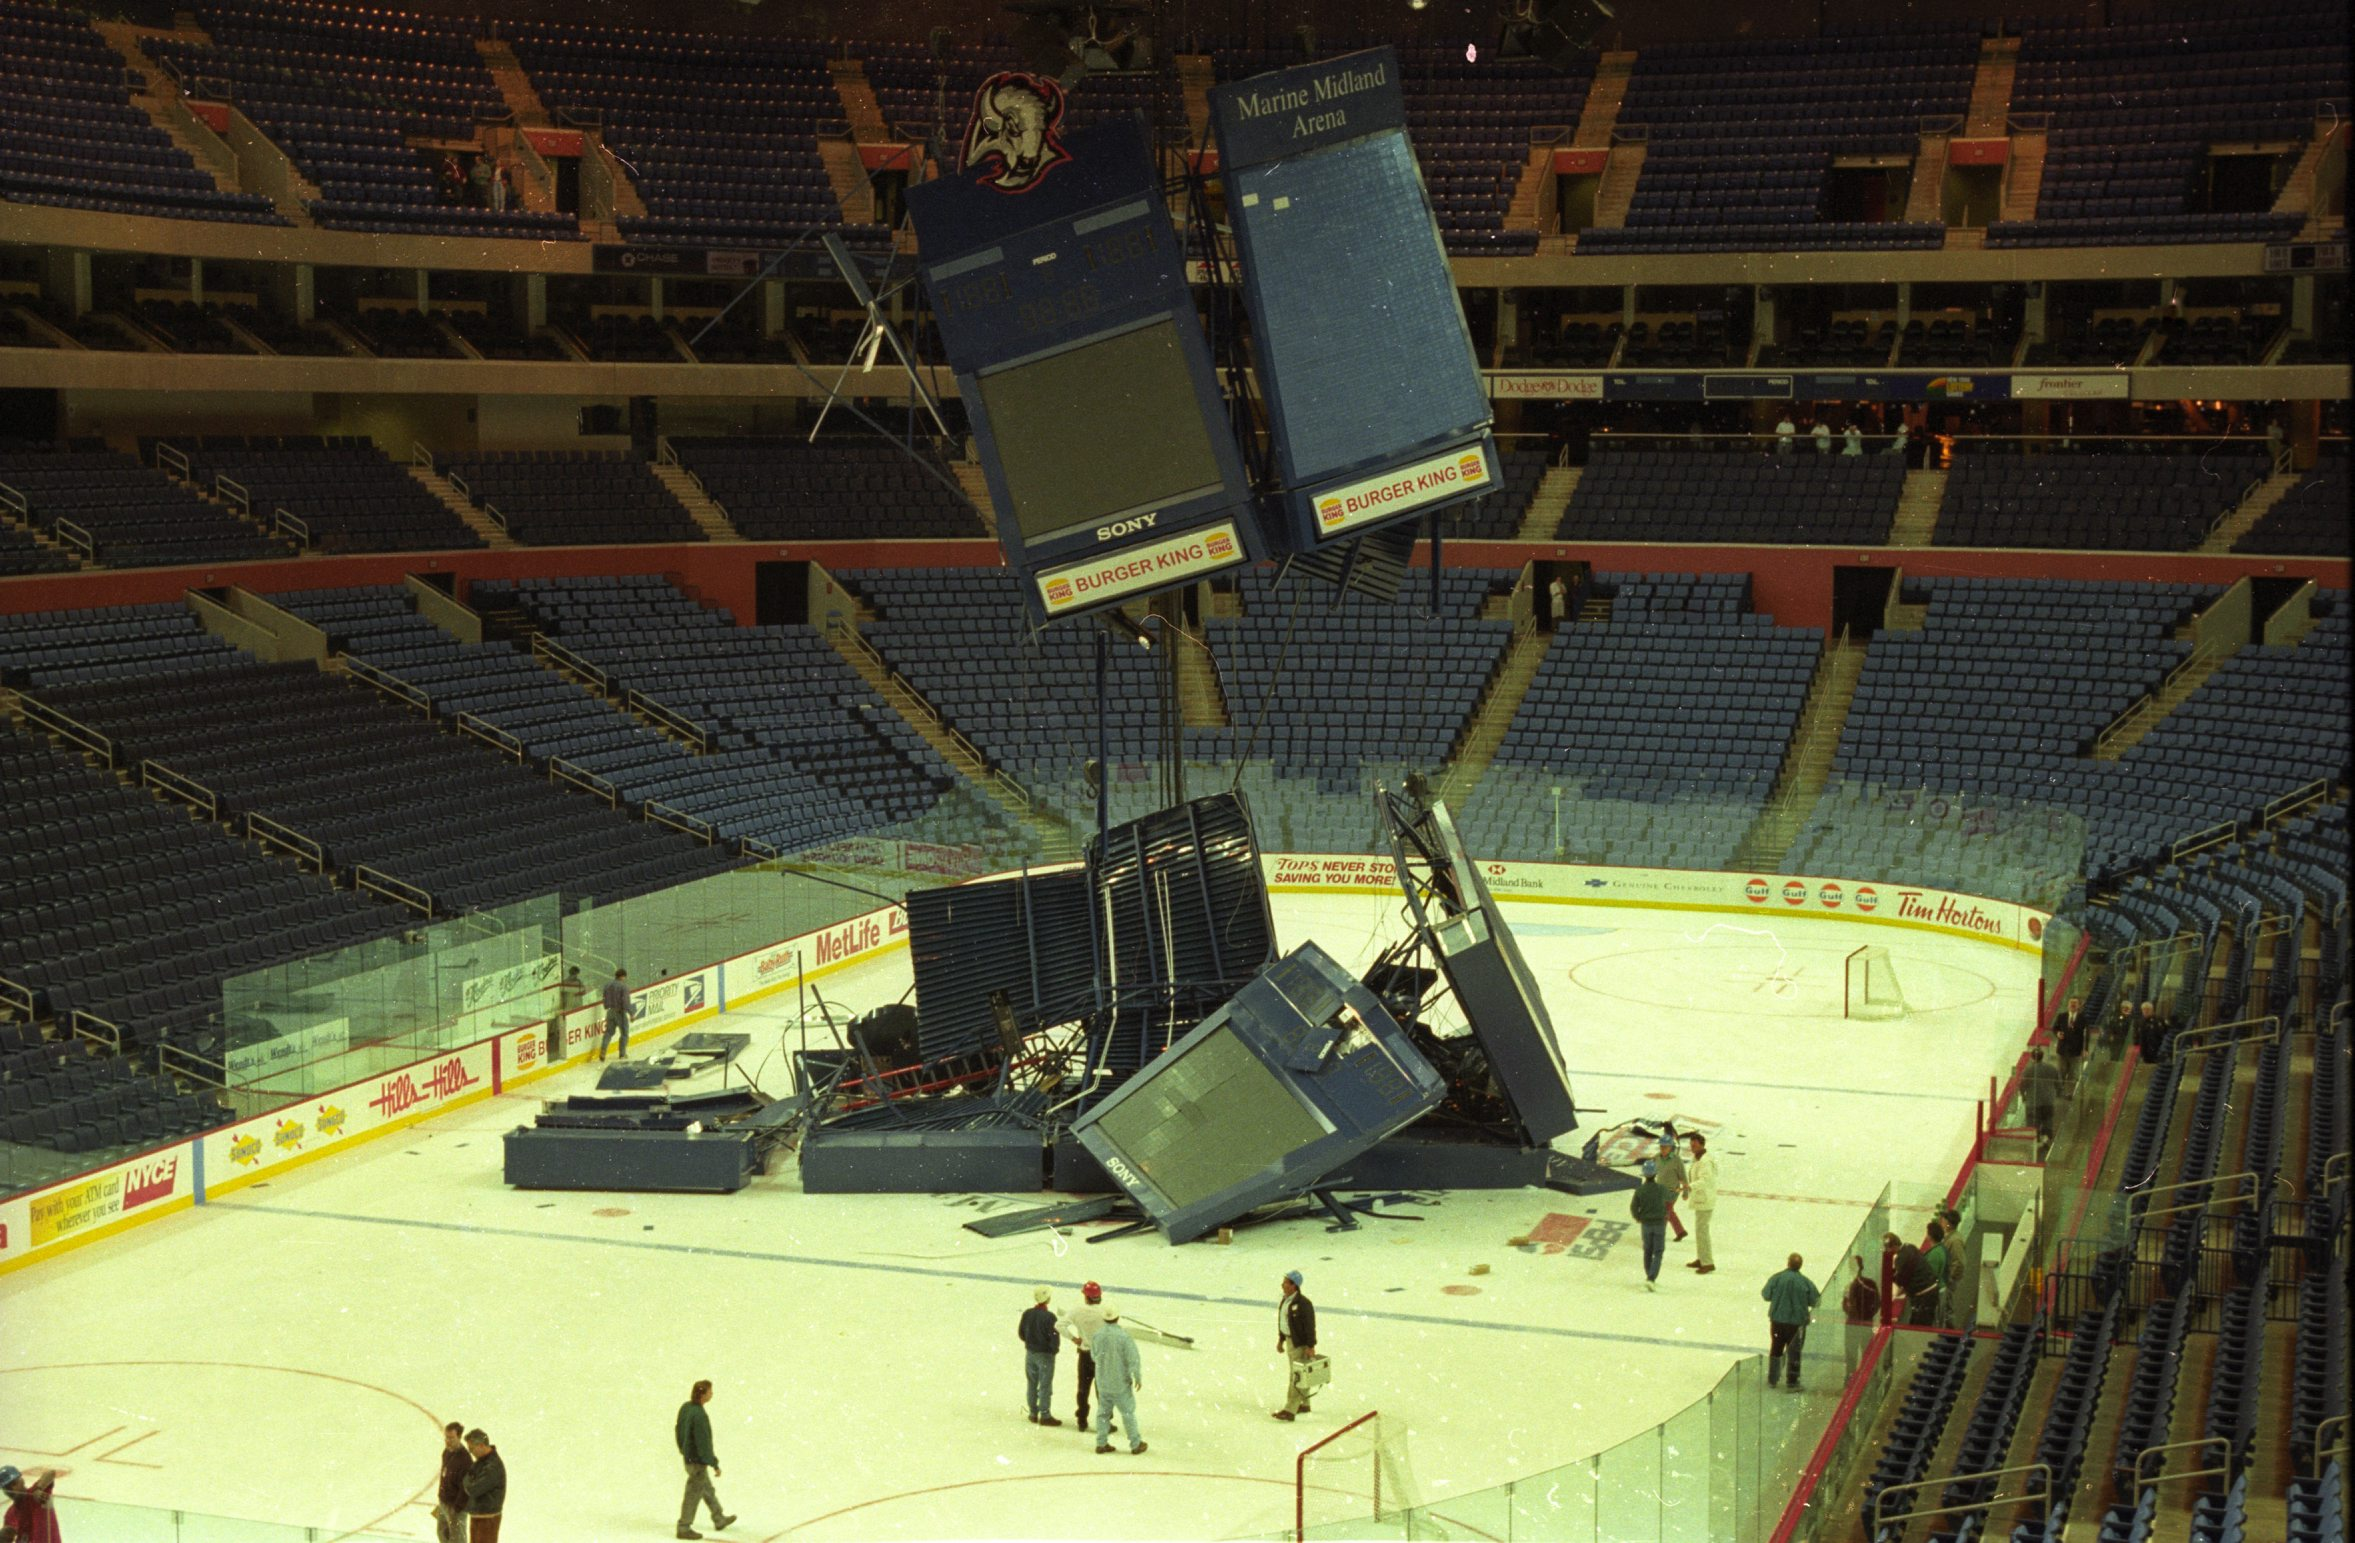 Jumbotron Crash, 11.16.96 - photo by Scull